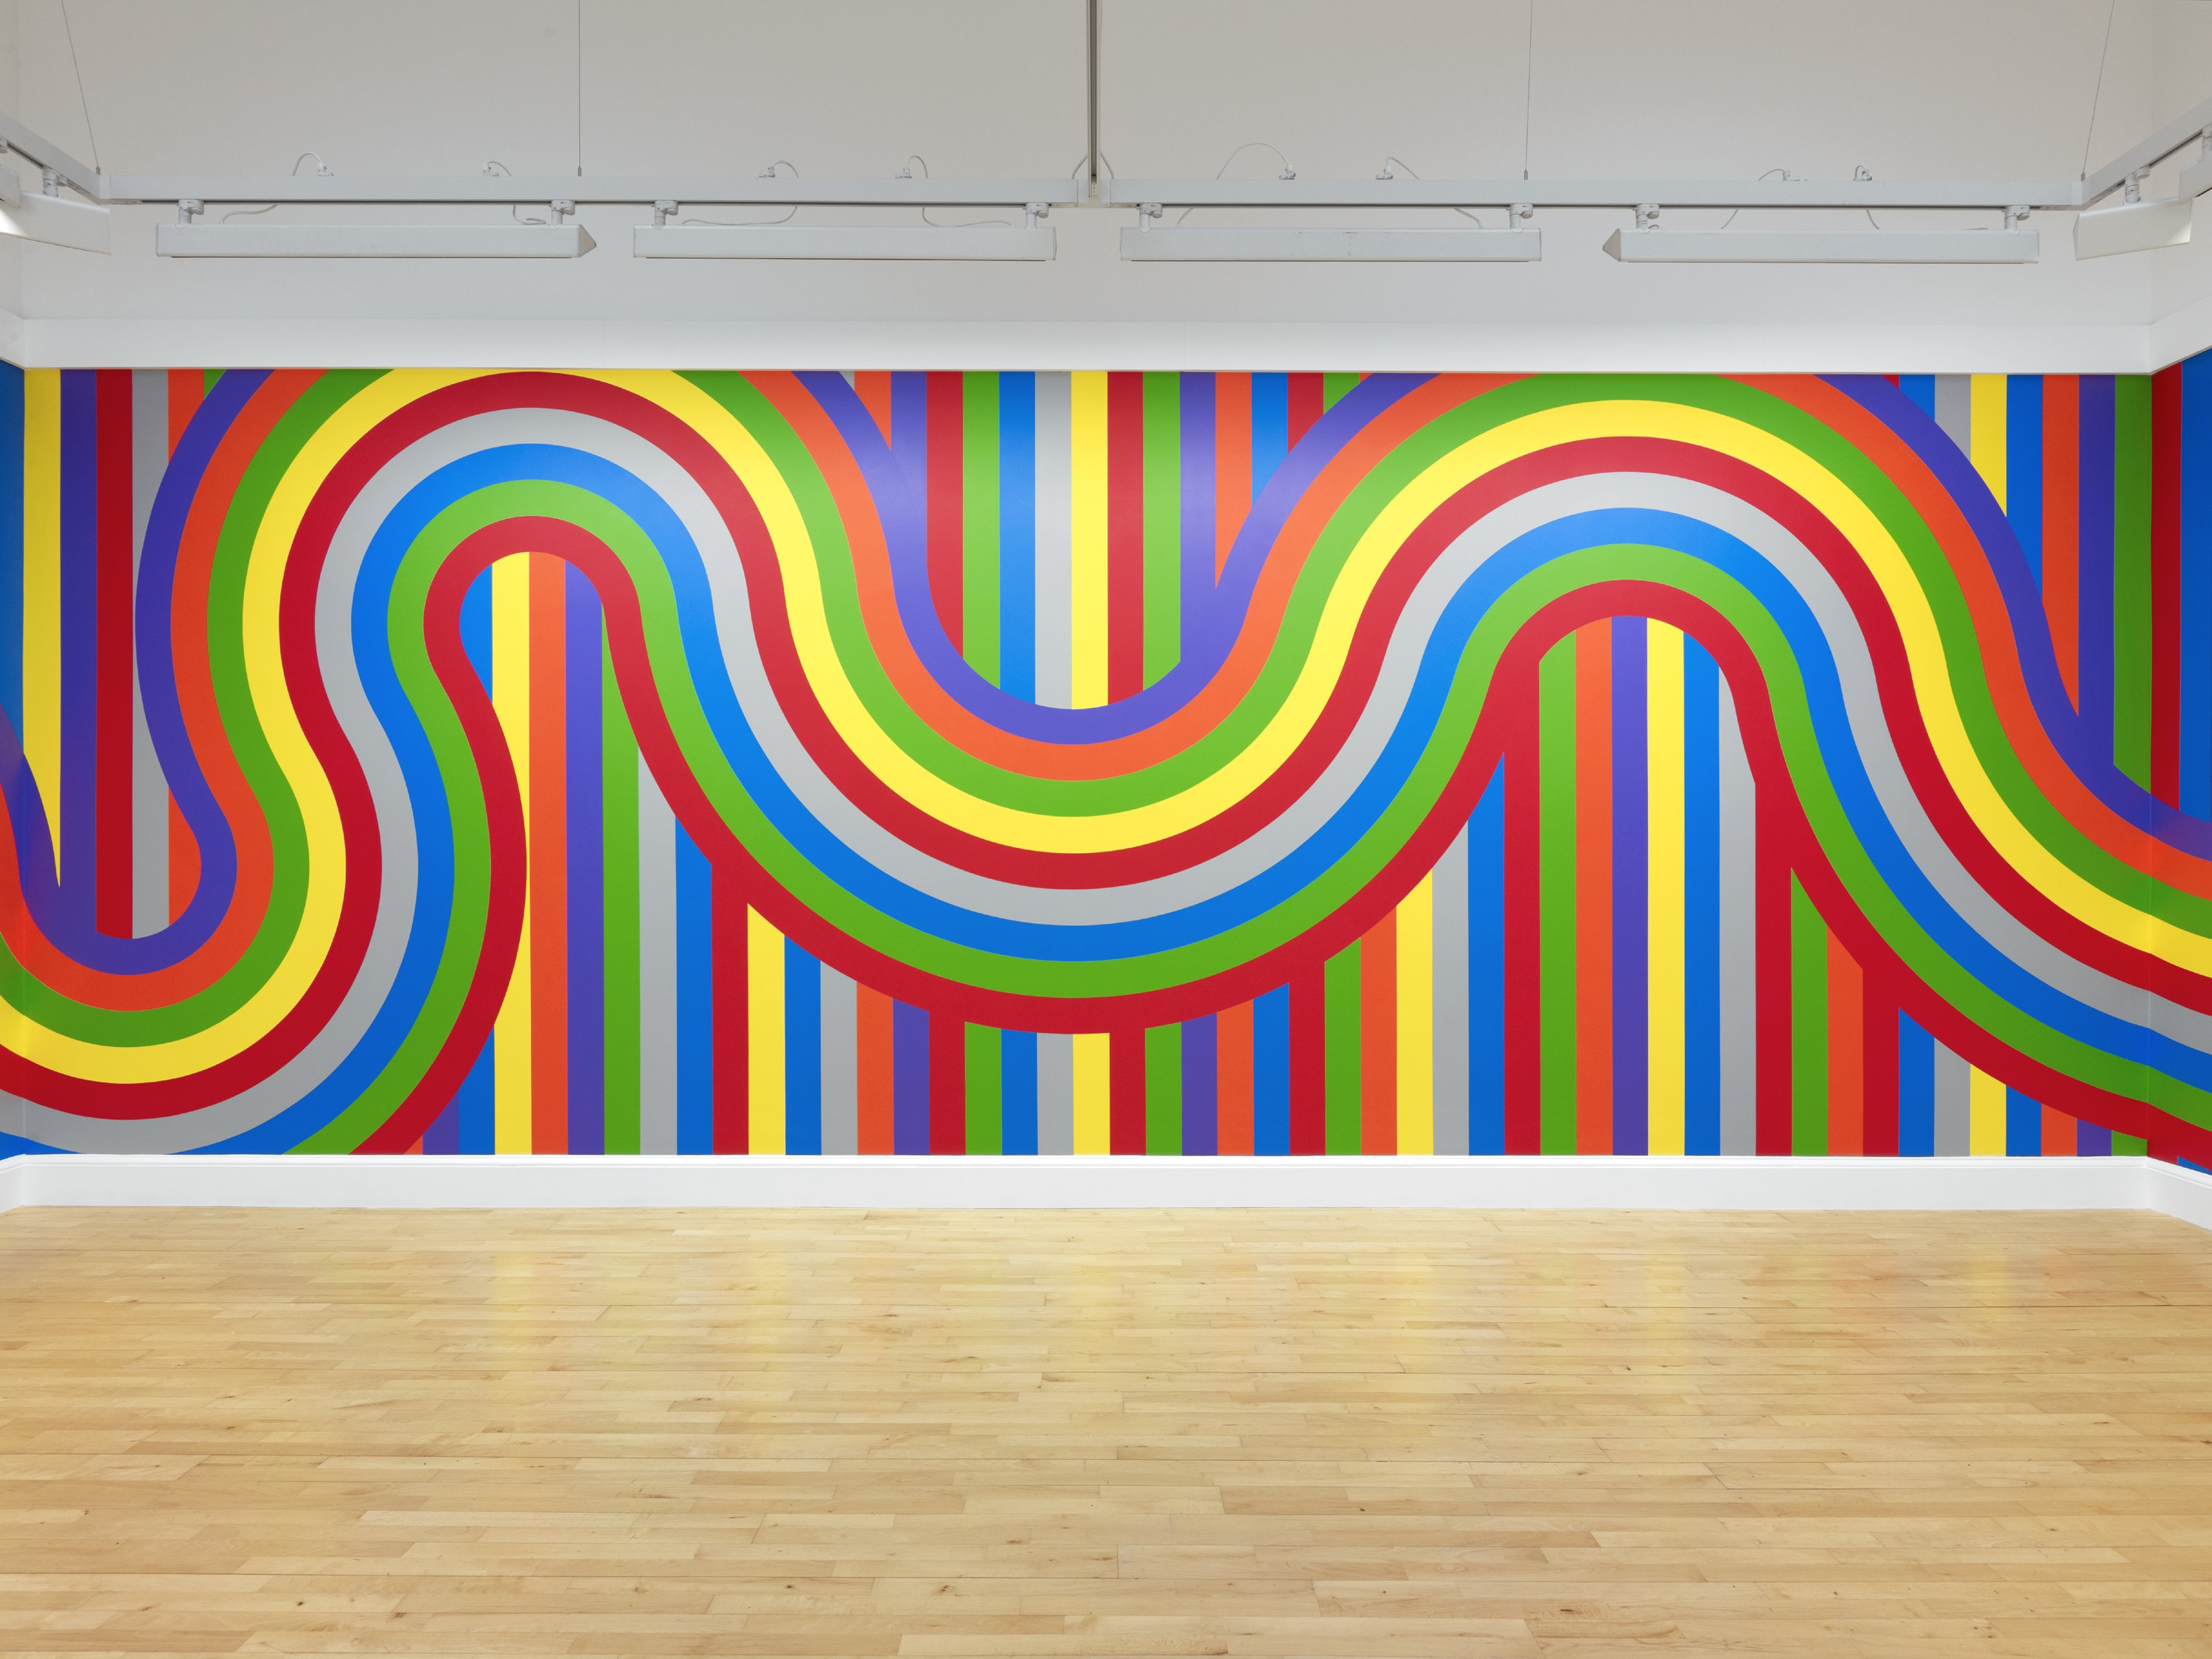 http://publicdelivery.org/wp-content/uploads/2013/07/sol-lewitt-wall-drawing-11361.jpg